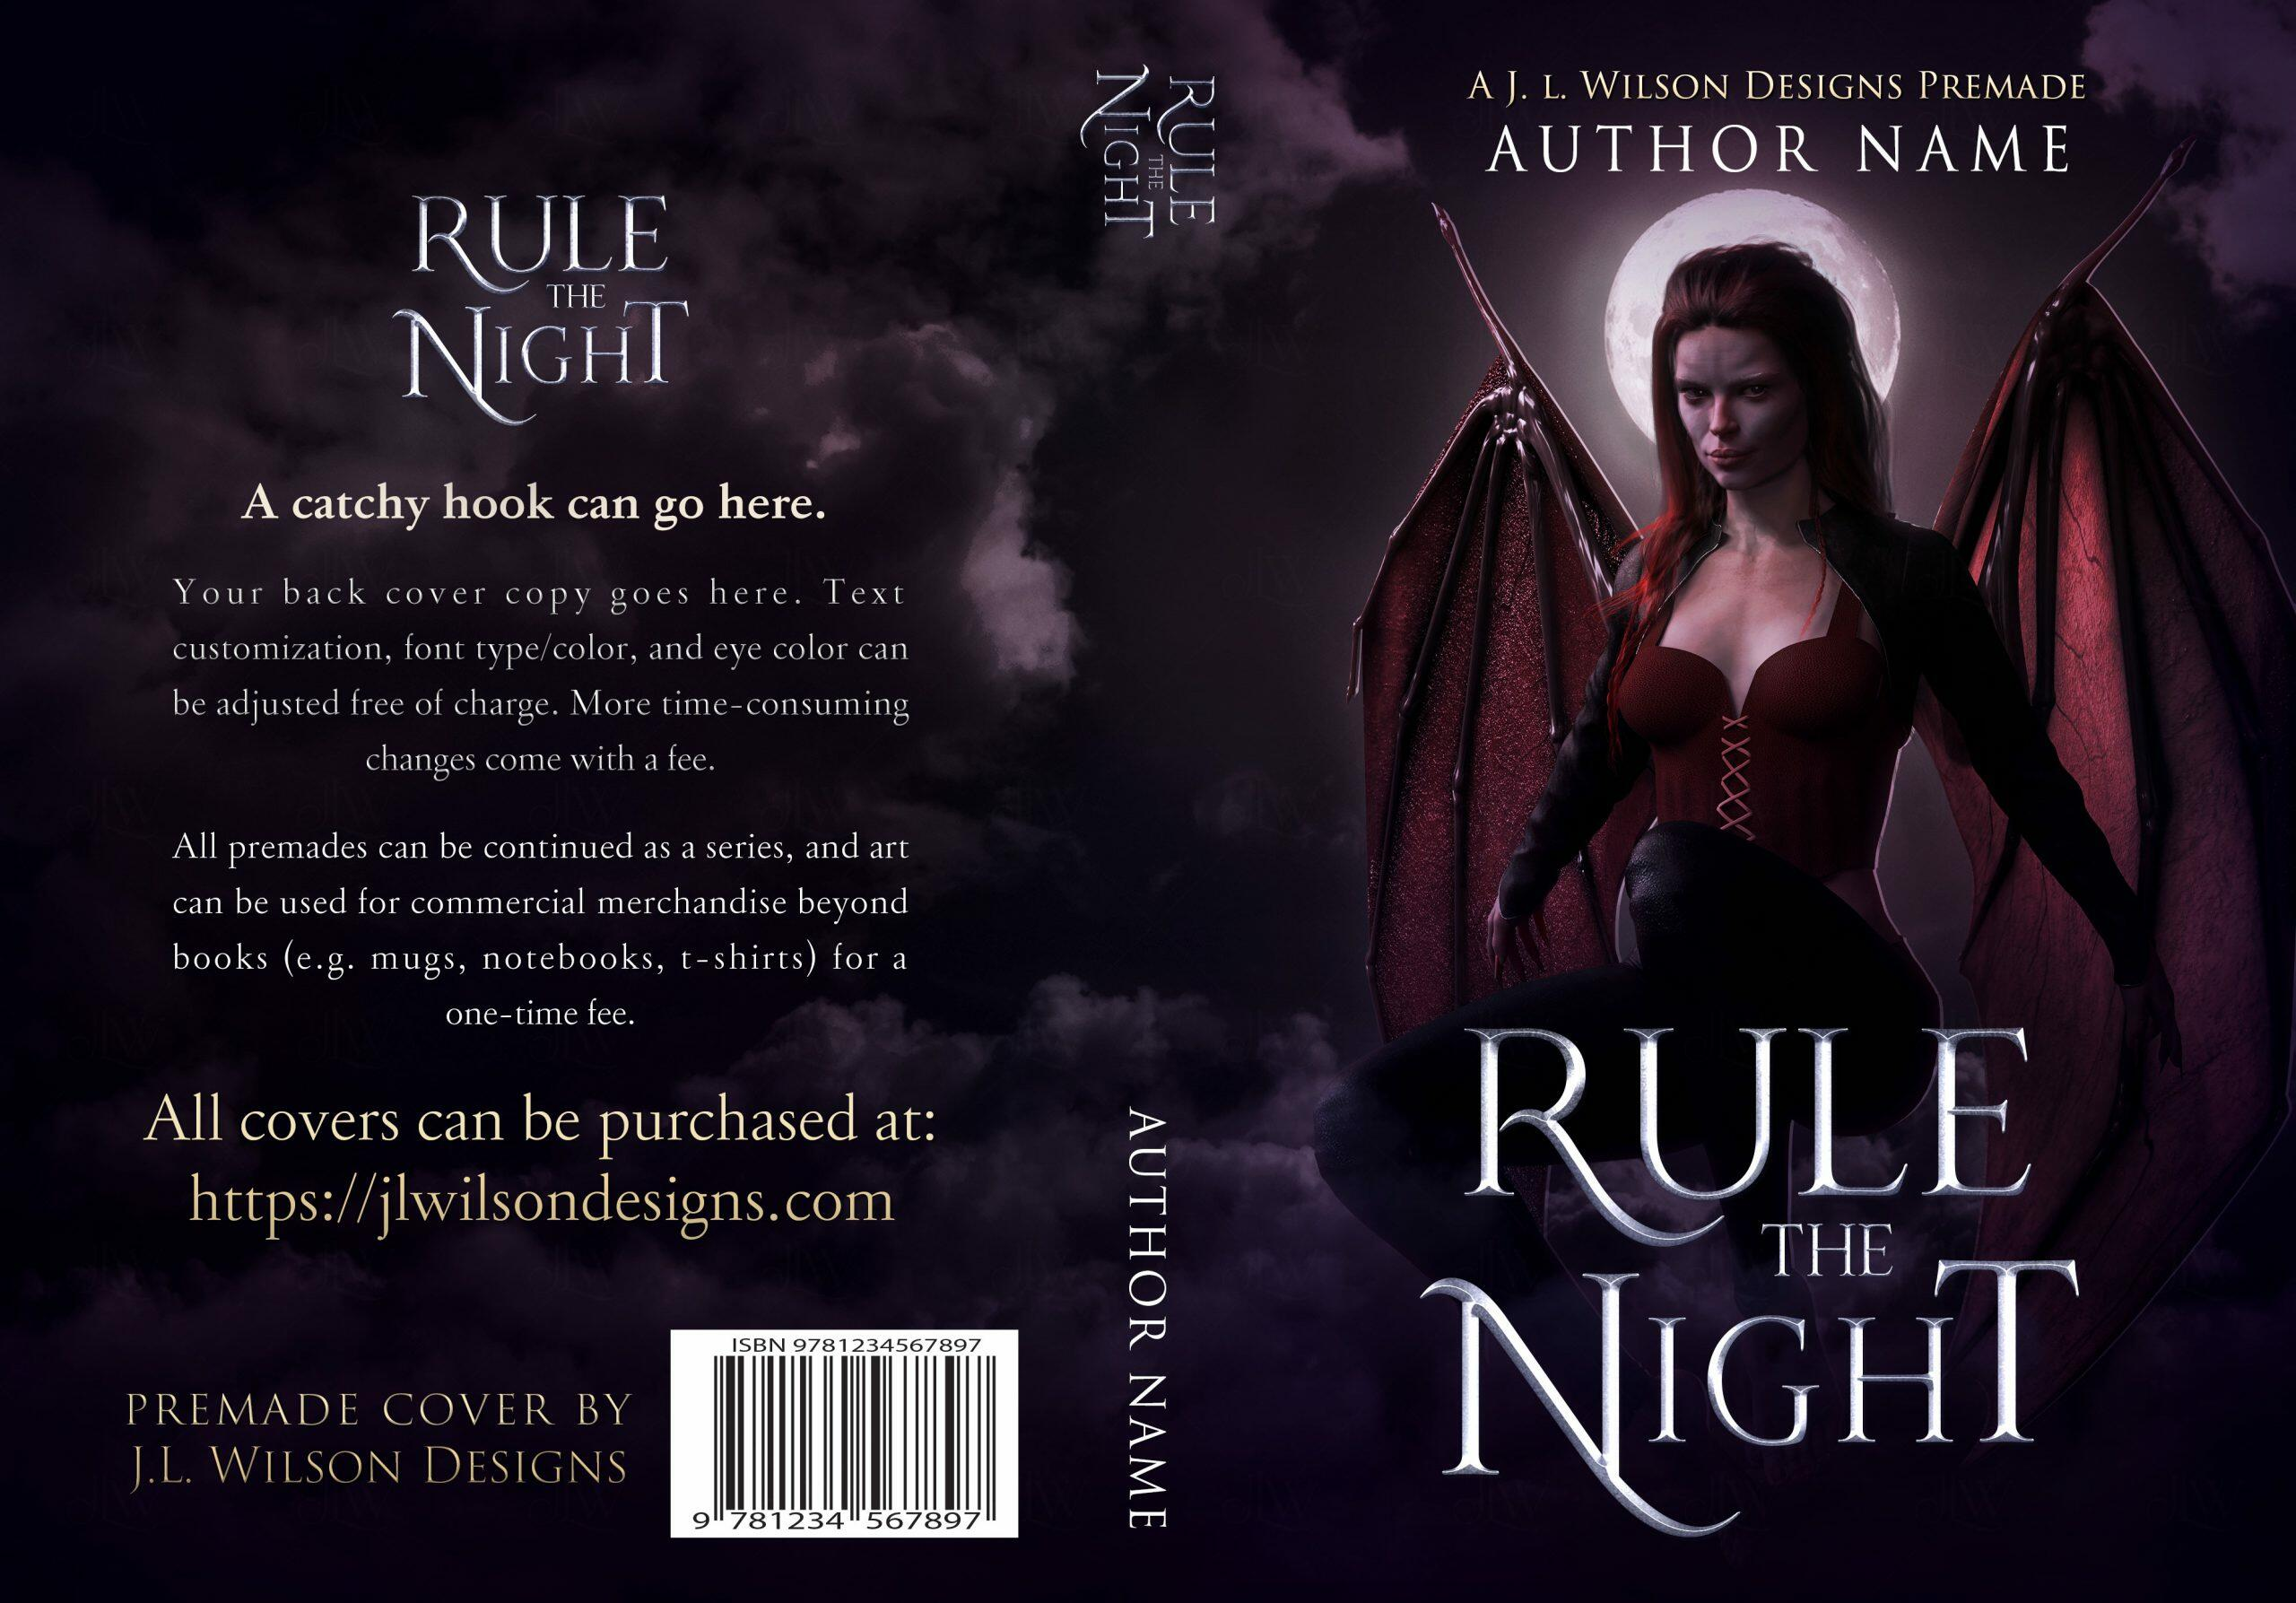 A dark fantasy book cover featuring a seductive demon woman with wings flying at night